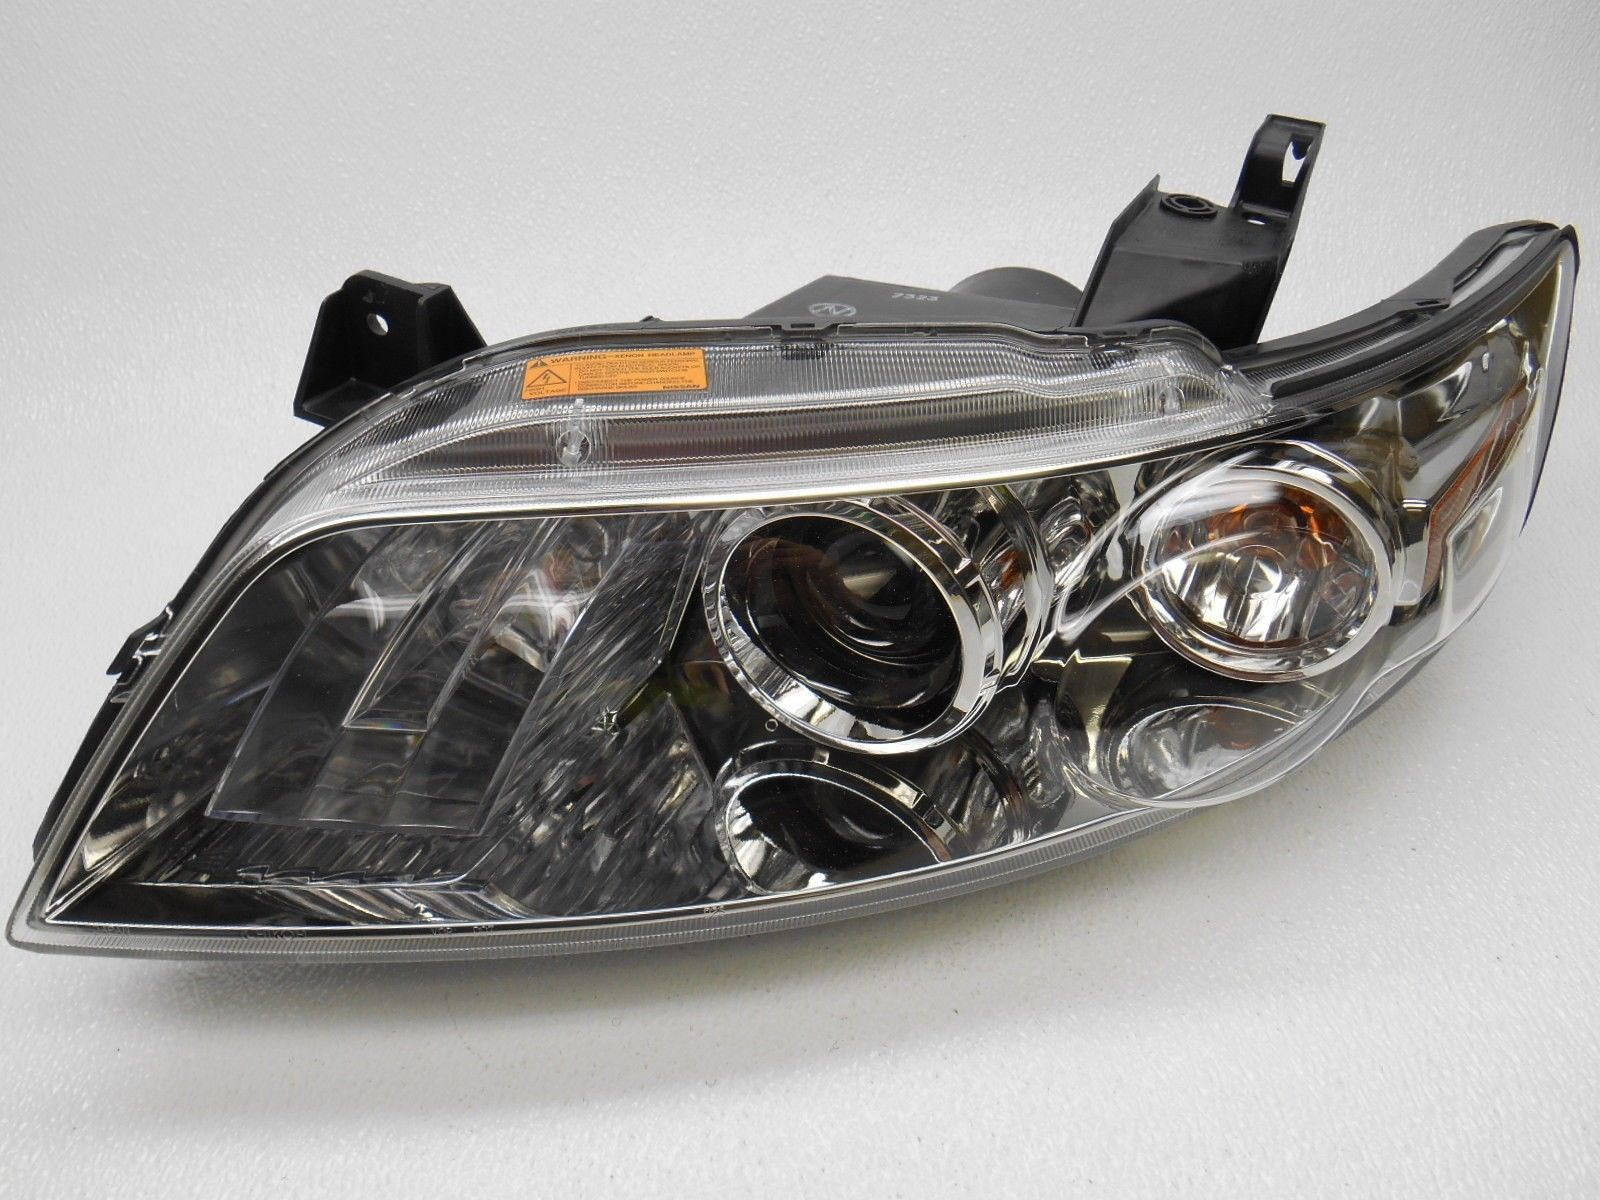 hight resolution of details about brand new oem infiniti fx35 fx45 left side hid headlight with bulb